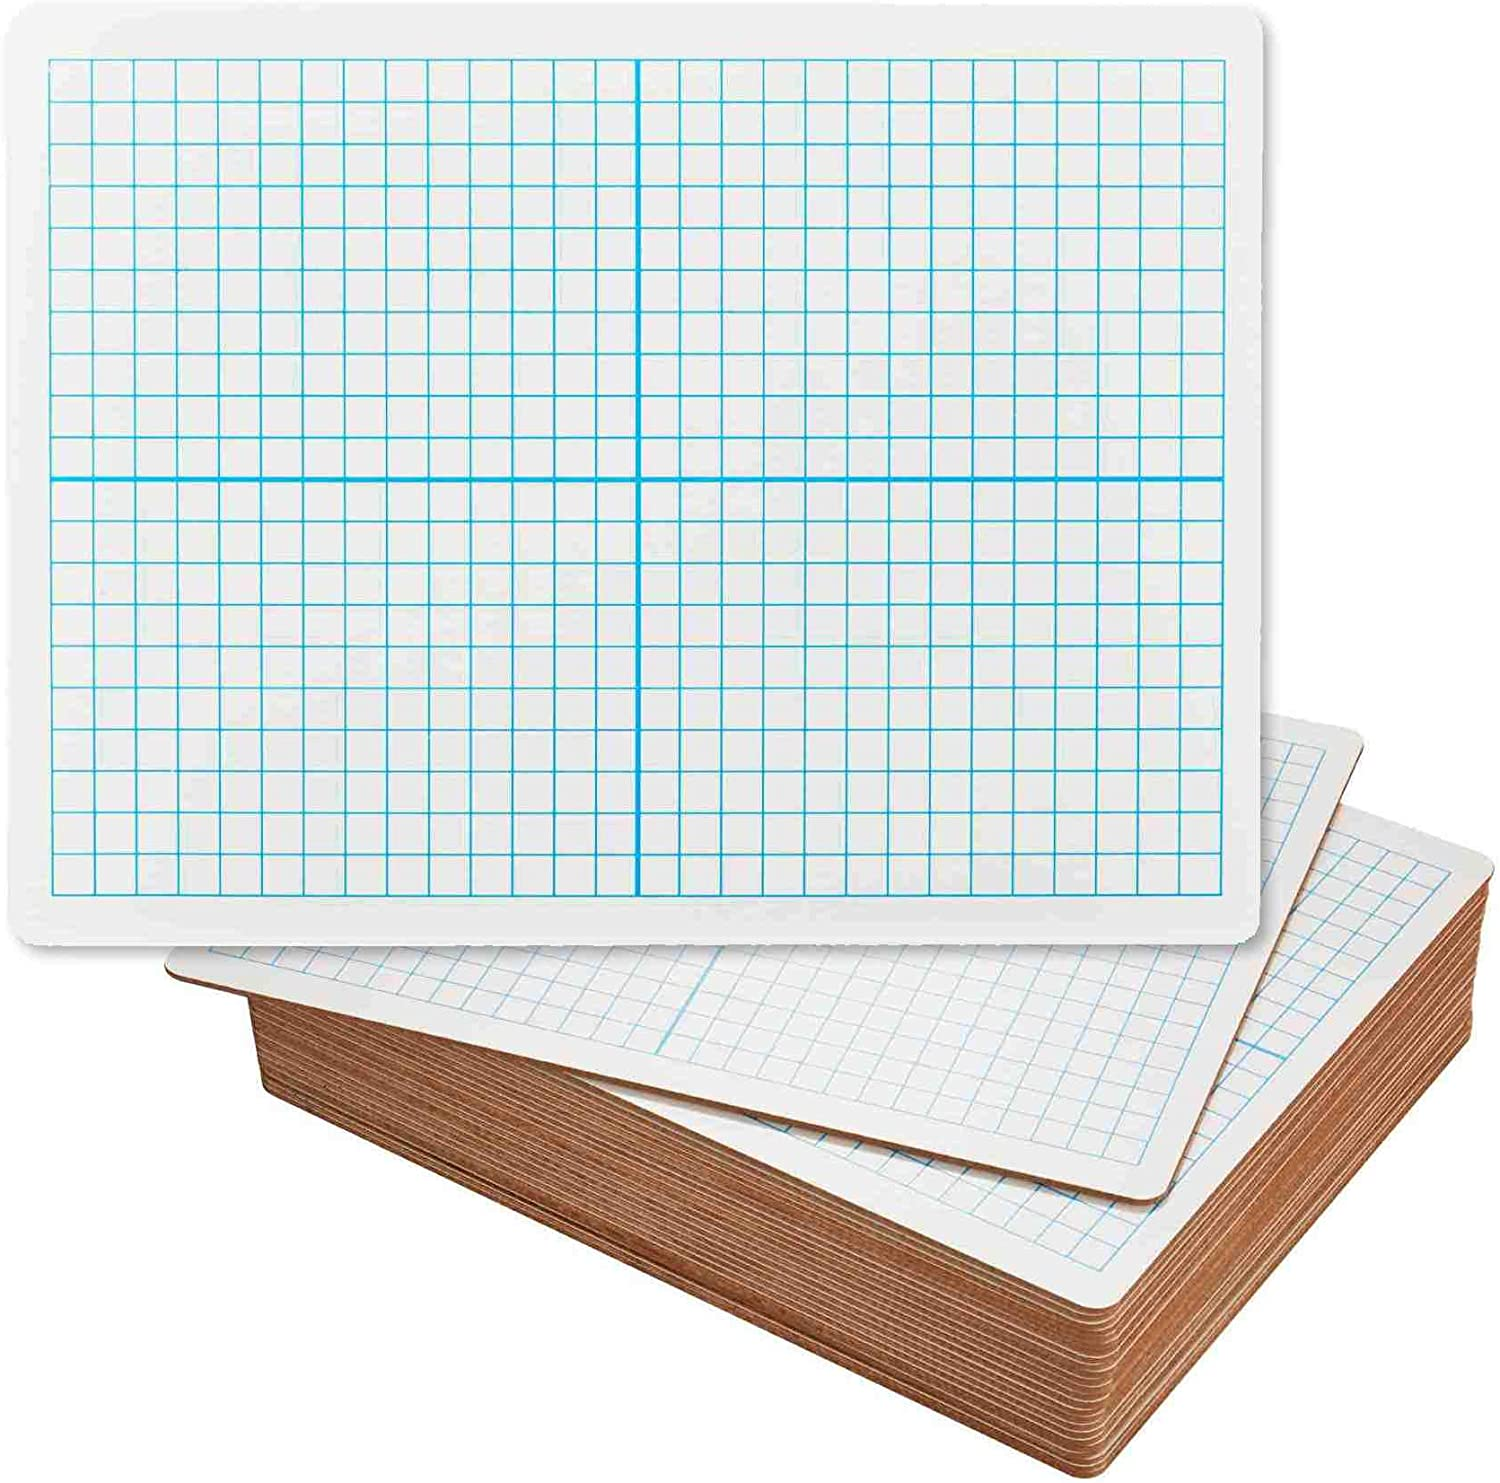 Dry Erase Lapboards store with Clearance SALE! Limited time! Grid Lines 25 of Whiteboar - Graph Pack